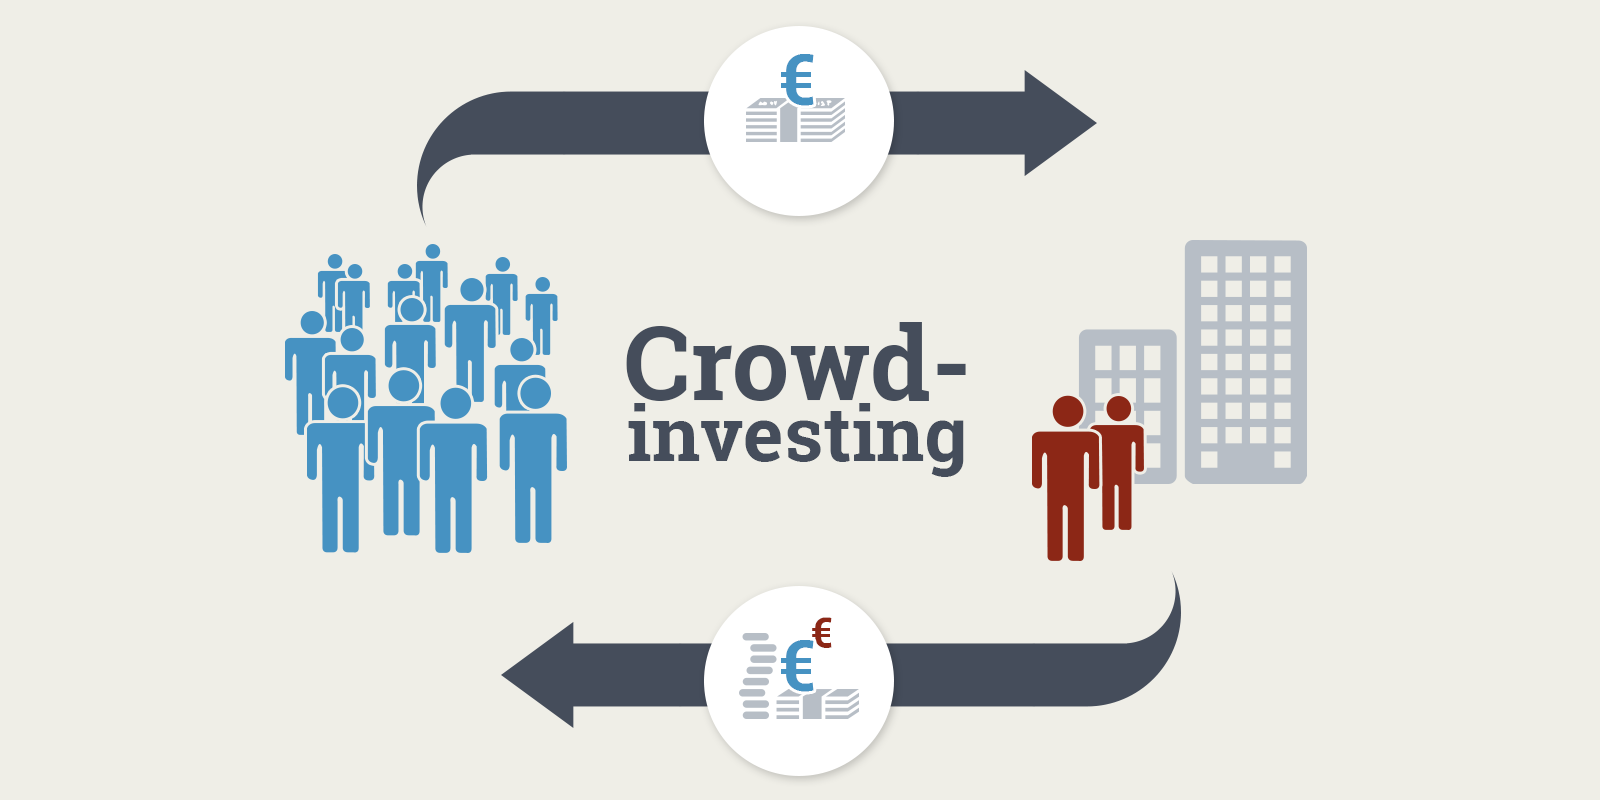 Reaping massive returns for the masses: crowdinvesting is fast becoming a feasible means of raising capital for real estate and property purchases.